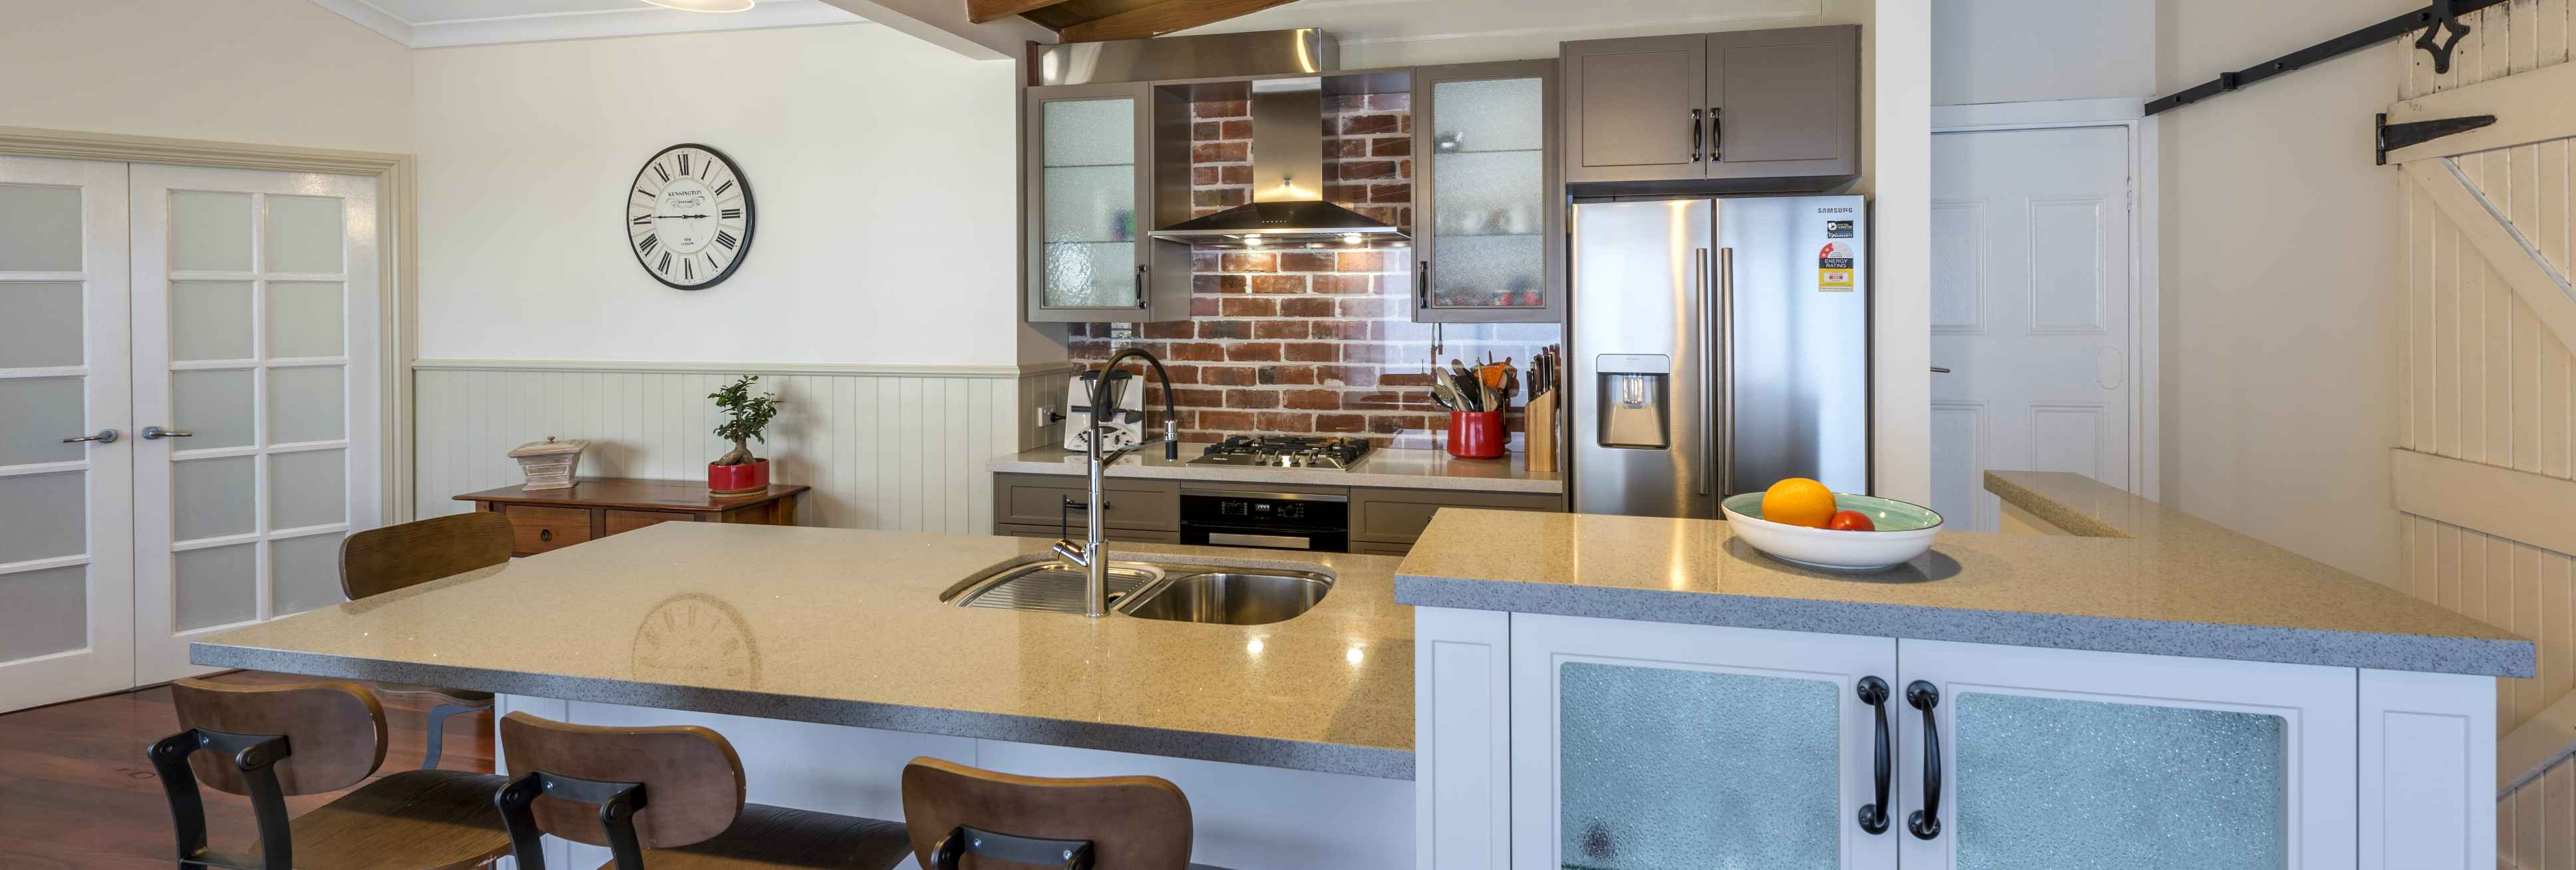 home renovations perth veejay s renovations kitchens